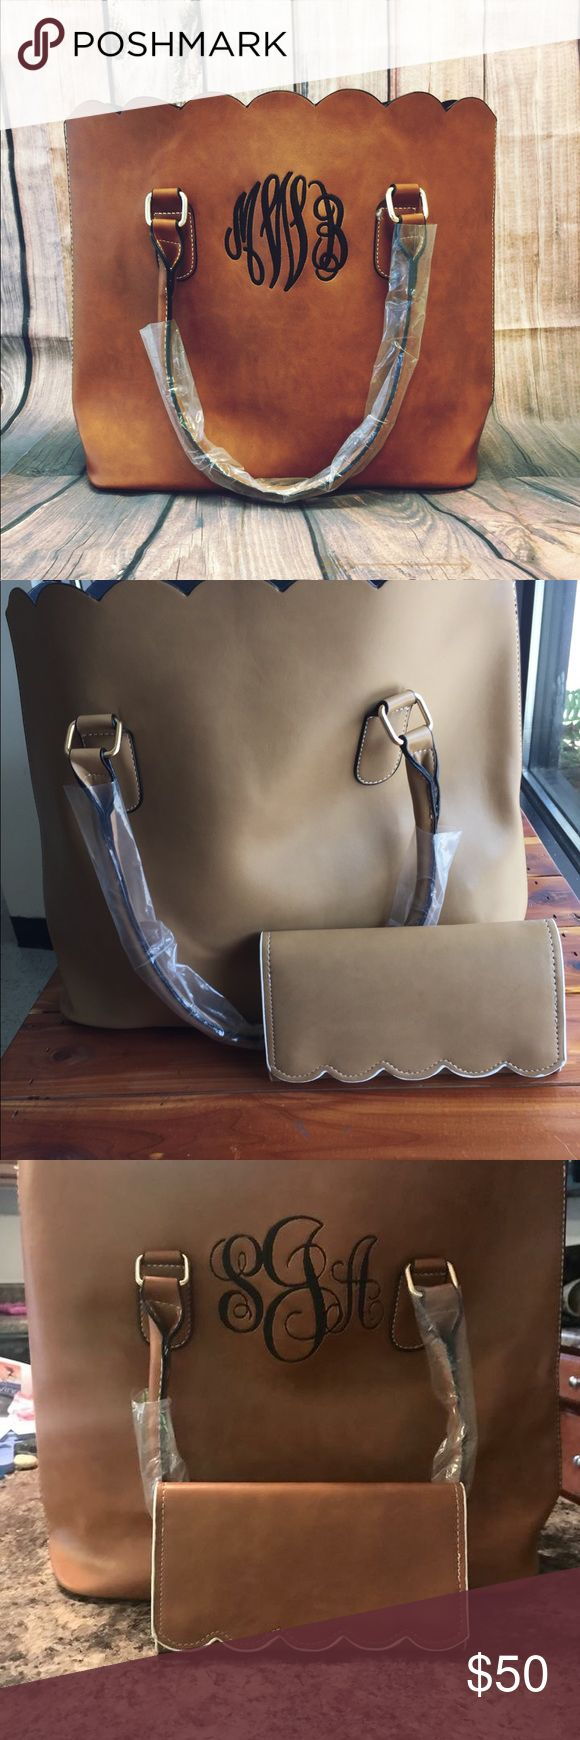 Monogram Scallop Tote & Wallet Set Super cute boutique shoulder bag with matching scallop wallet. Comes in the color khaki and camel. They don't have a zipper, they are just open at the top. The wallet has two snaps for closure! Bags Shoulder Bags